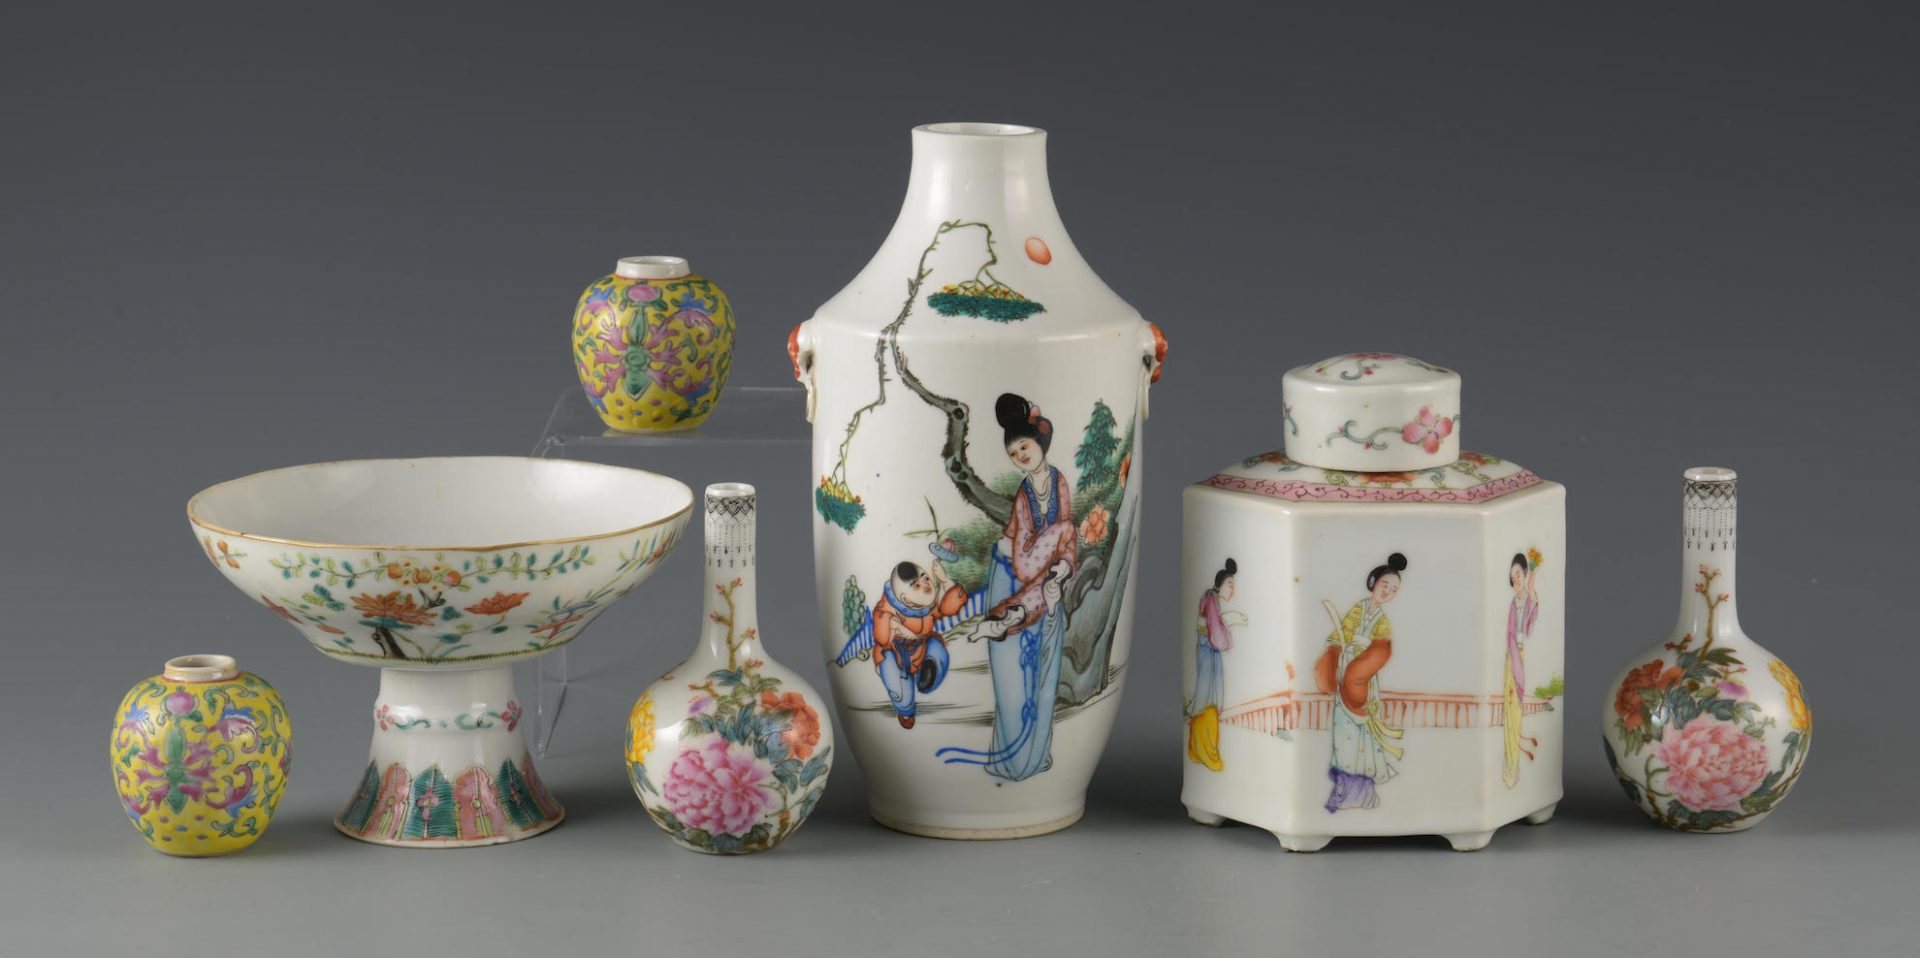 Lot 648: 7 Chinese Famille Rose Porcelain Items